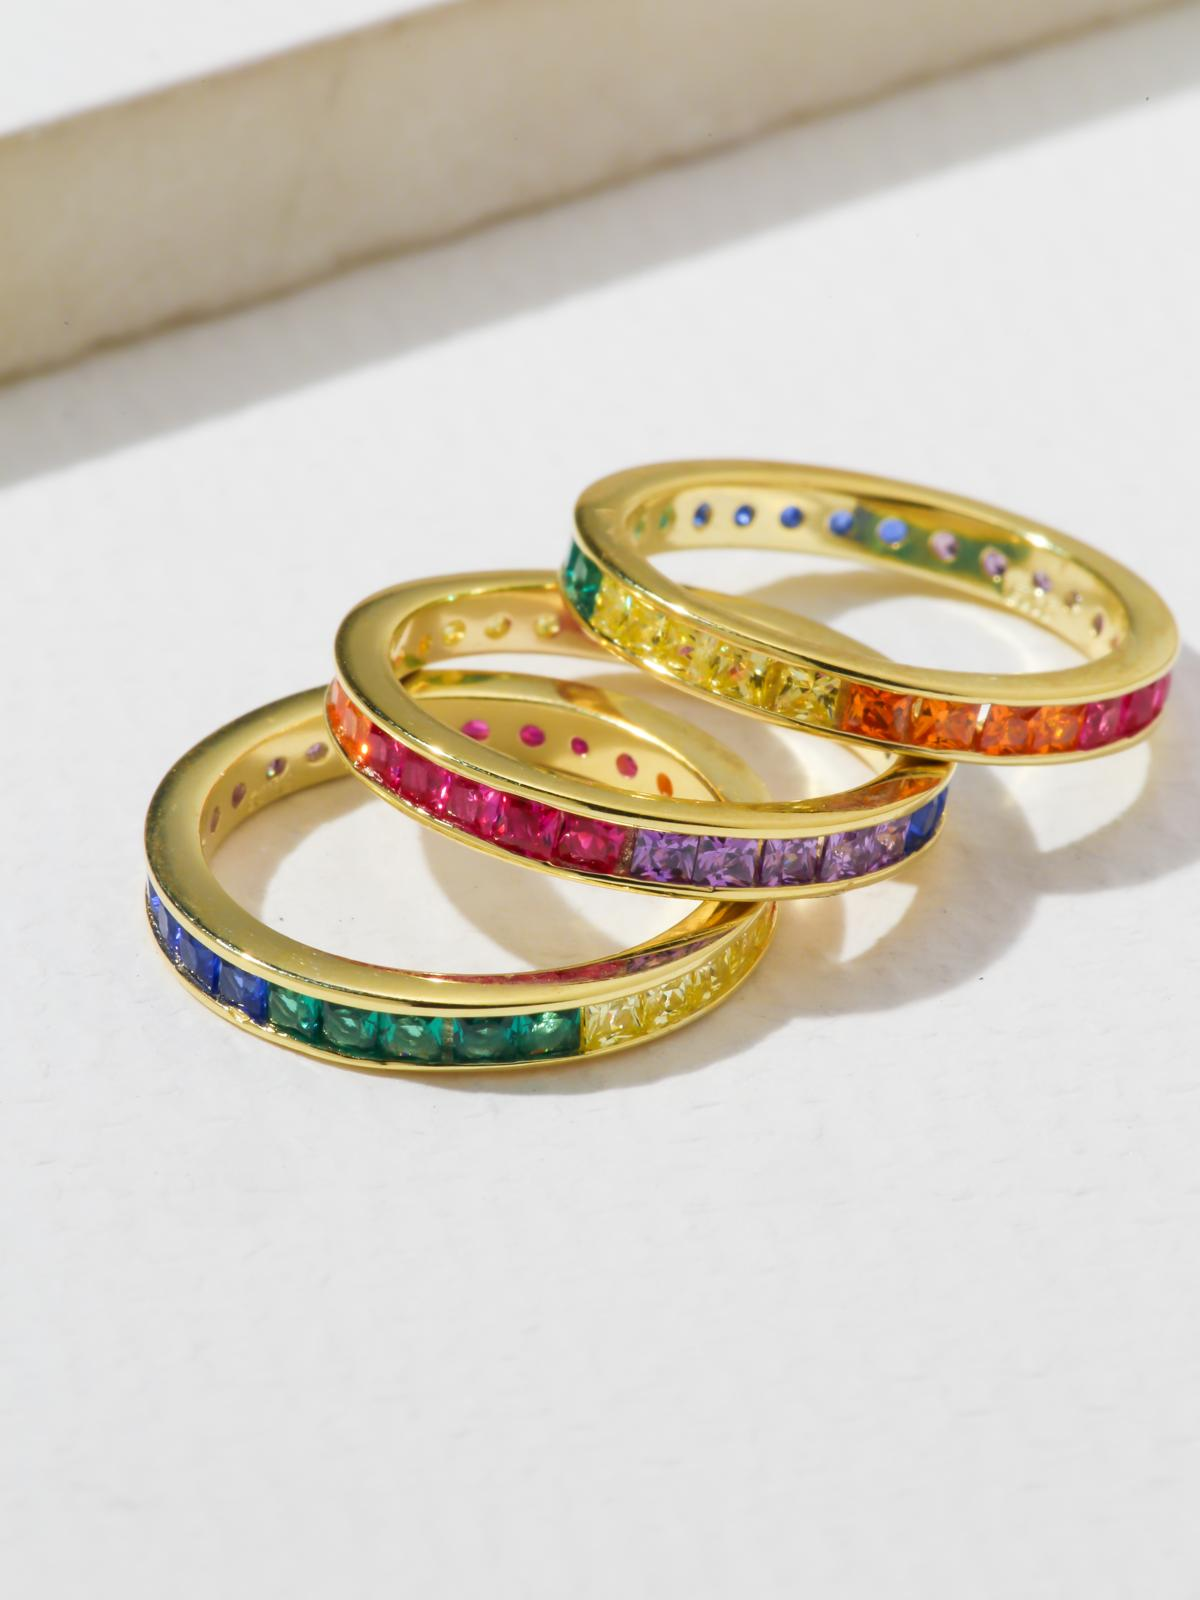 The Delilah Rings